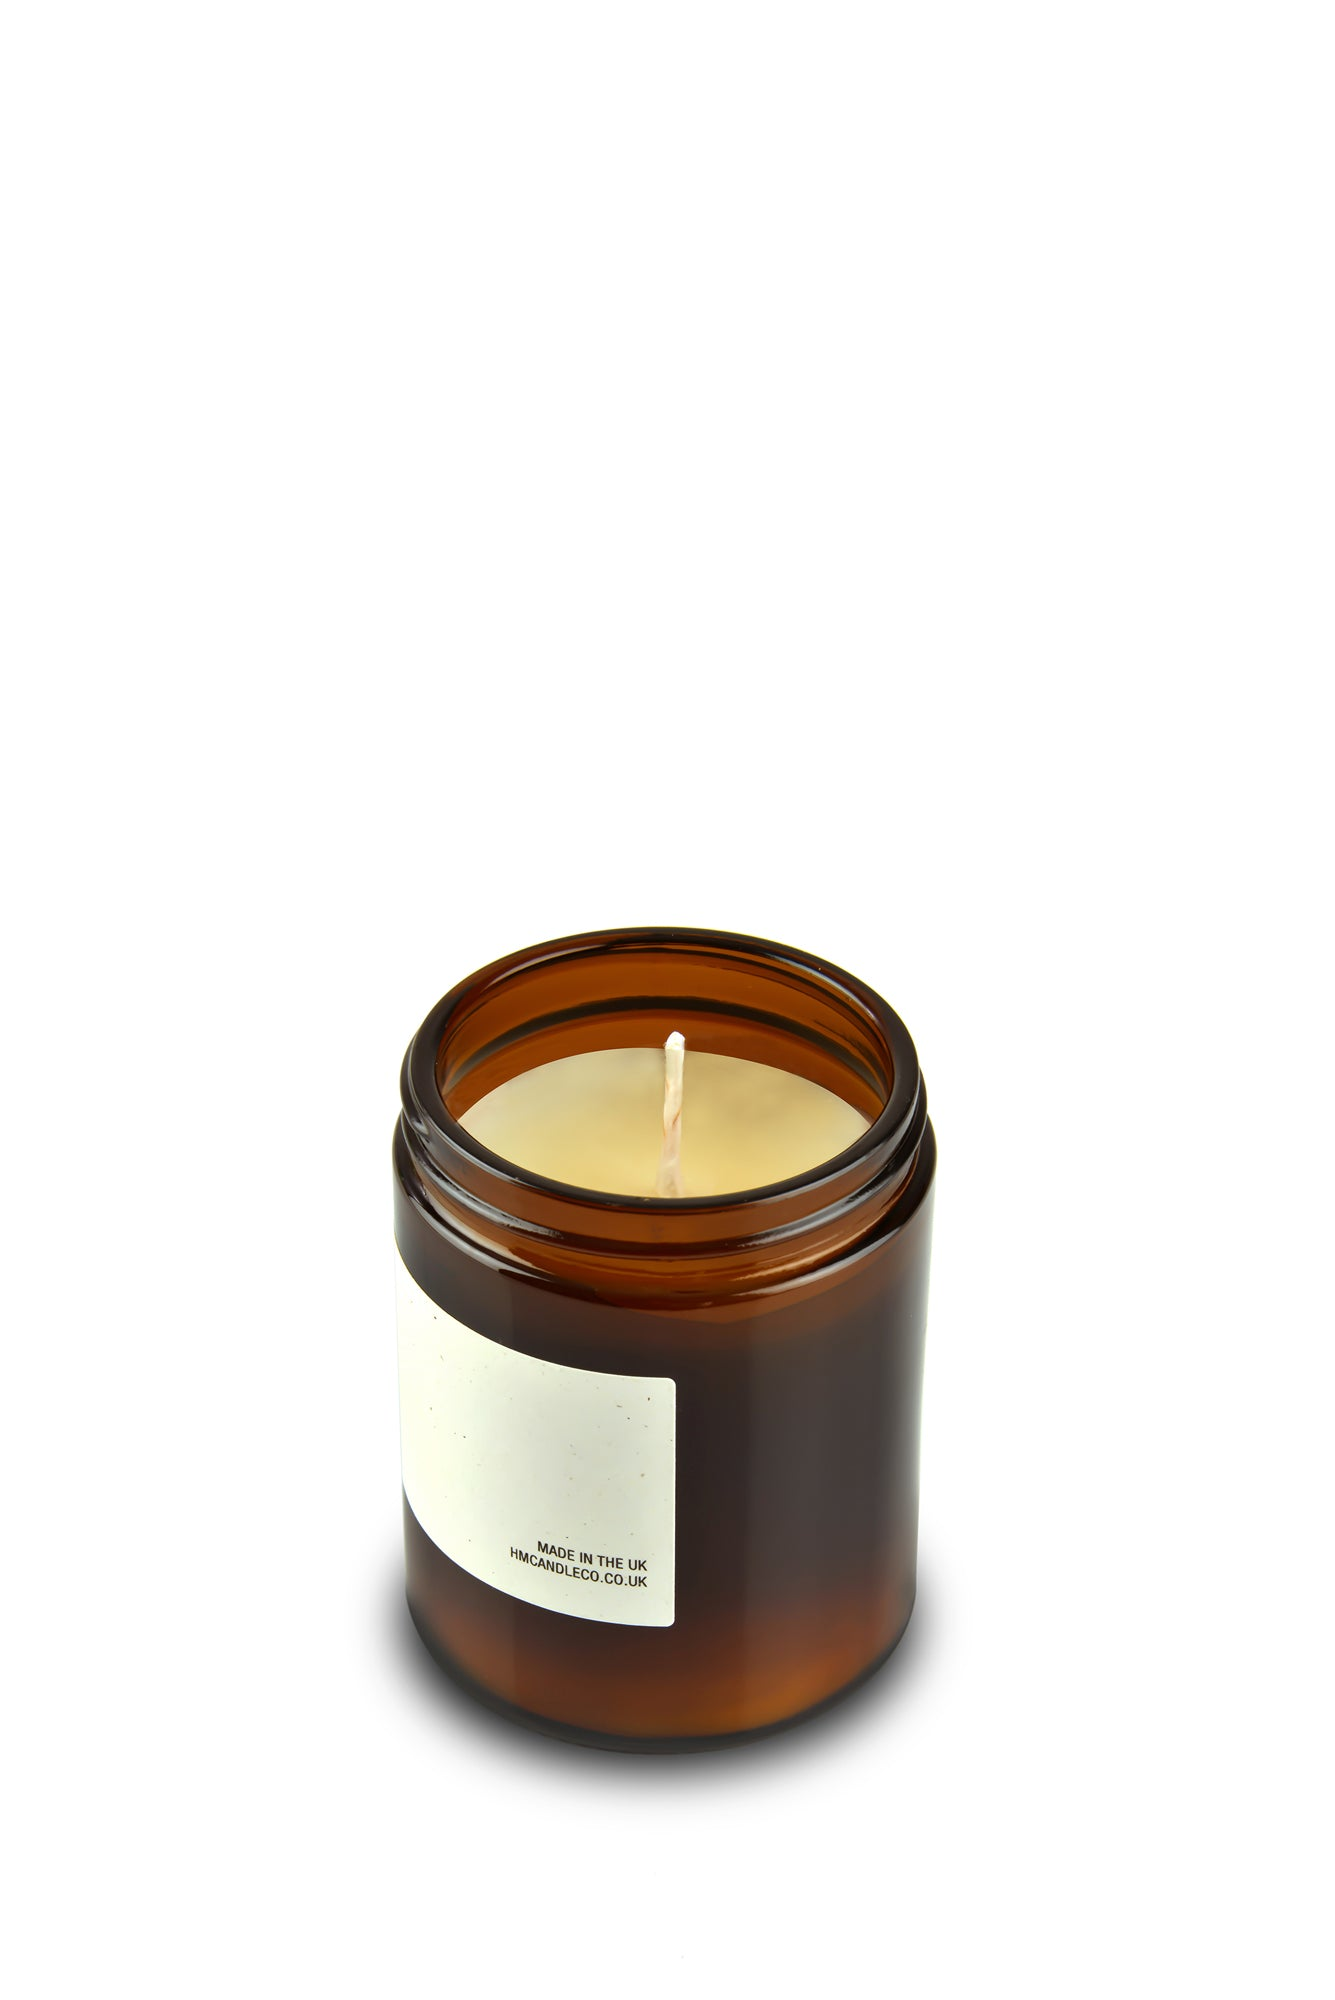 Orange Cedarleaf Soy Wax Candle